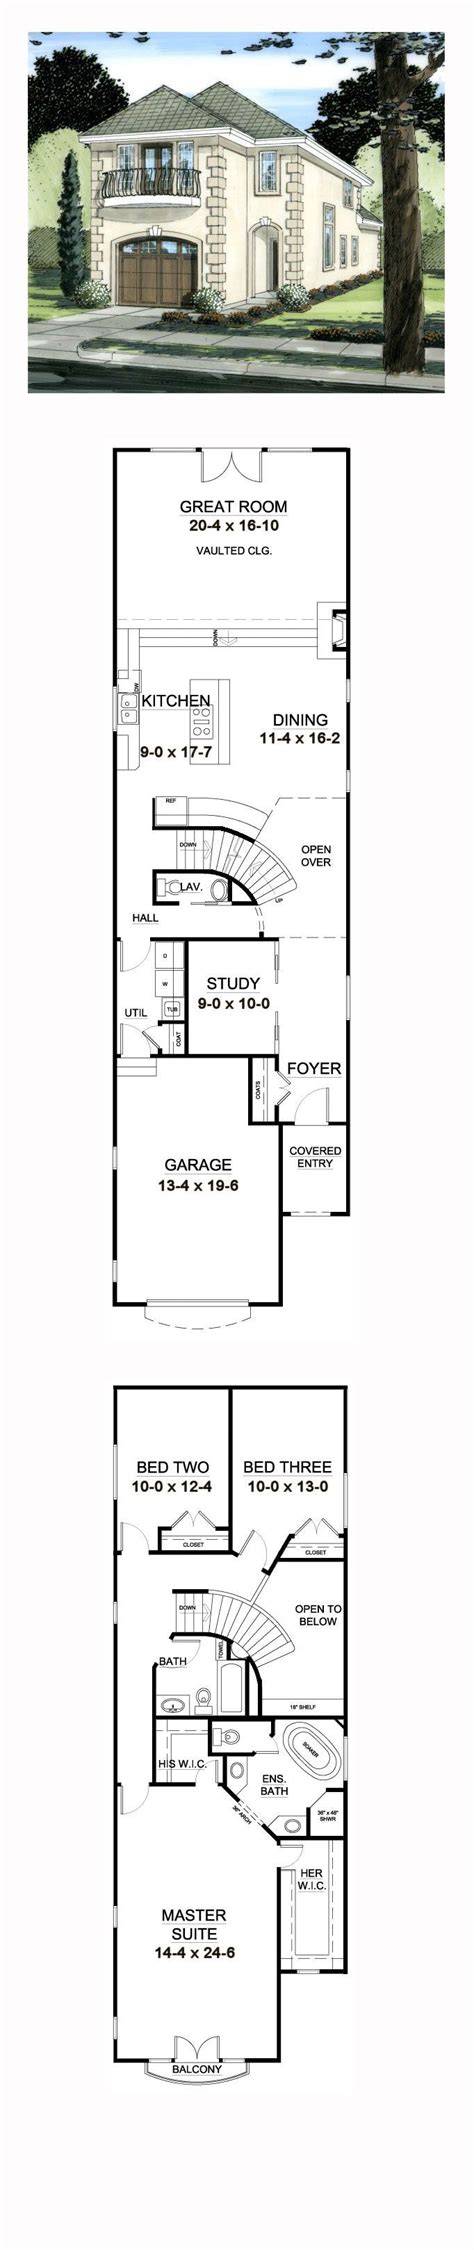 narrow lot house plans with basement florida house plan 99997 narrow lot house plans and bedrooms